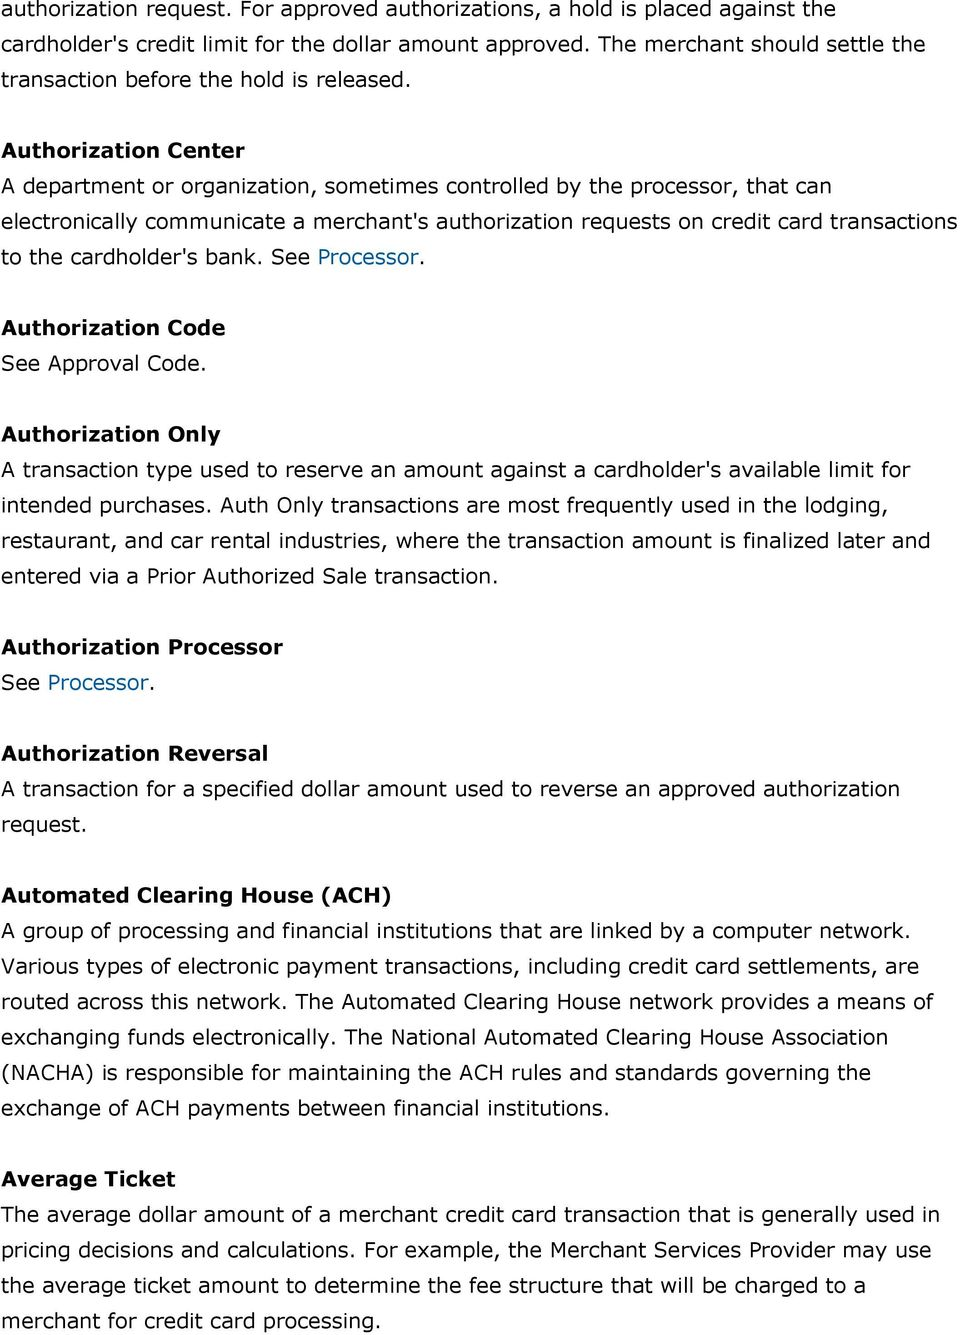 Authorization Center A department or organization, sometimes controlled by the processor, that can electronically communicate a merchant's authorization requests on credit card transactions to the